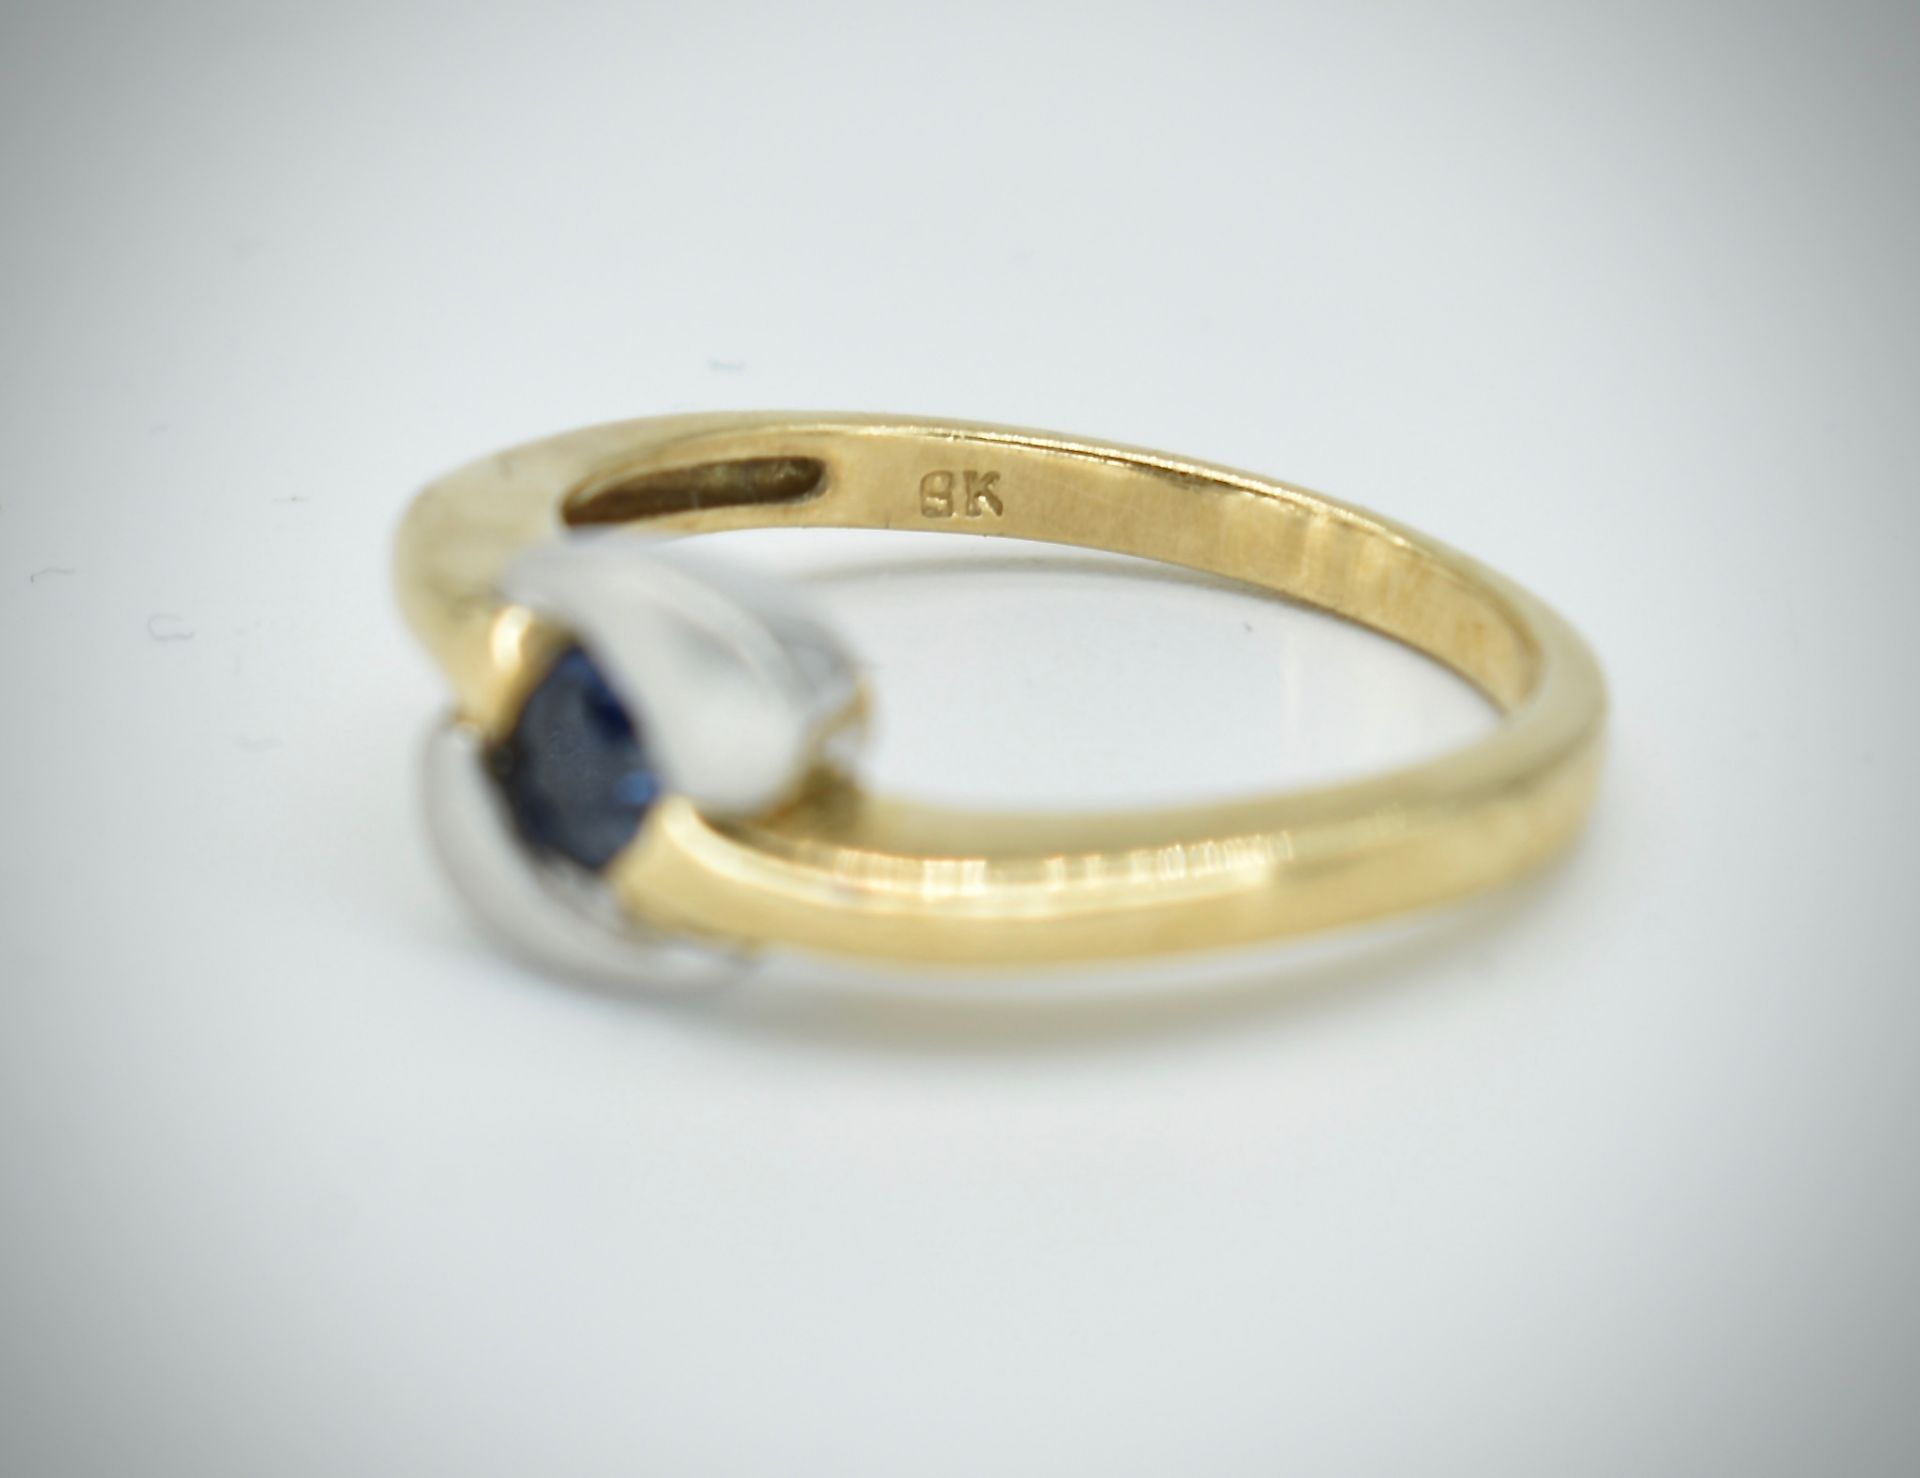 9ct Gold & Sapphire Ring - Image 2 of 5